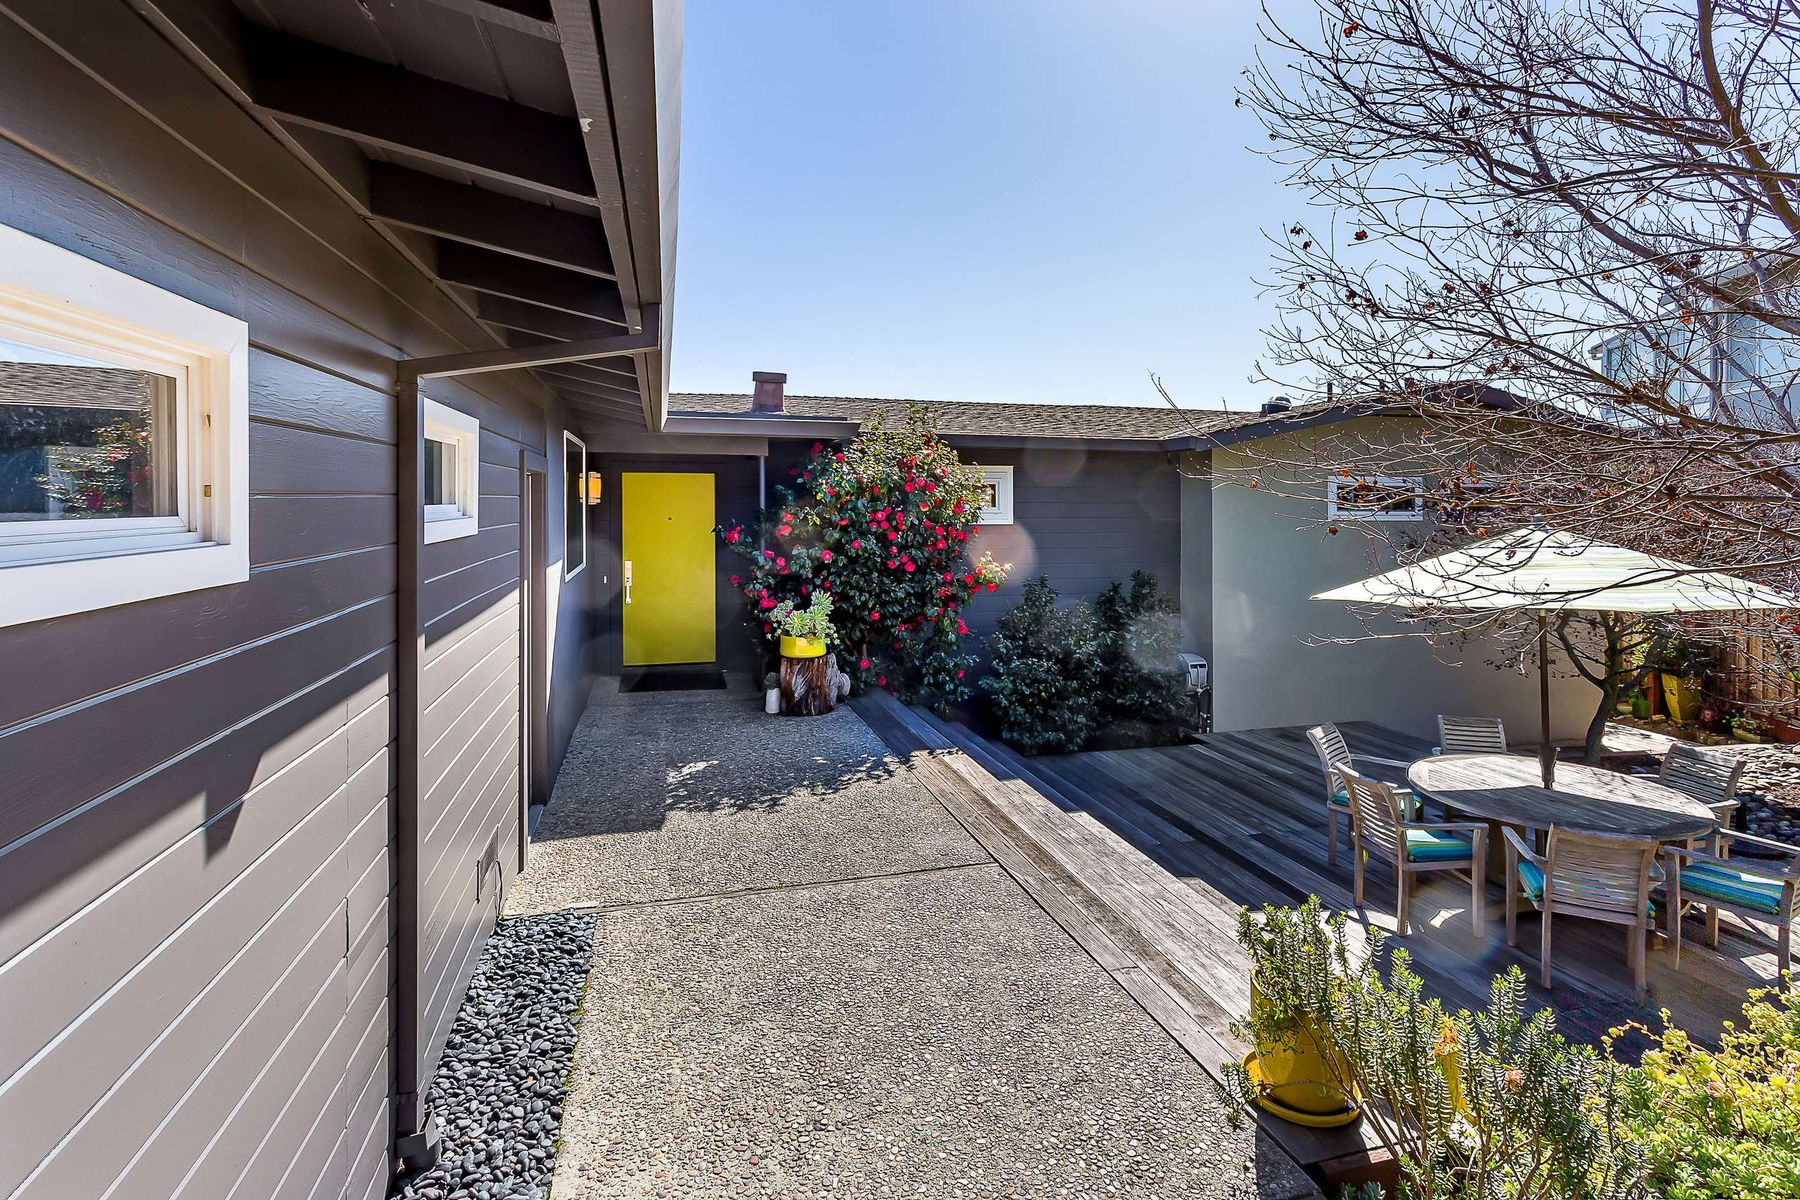 Single Family Home for Active at Indoor/Outdoor Belmont Living 2417 Read Ave Belmont, California 94002 United States